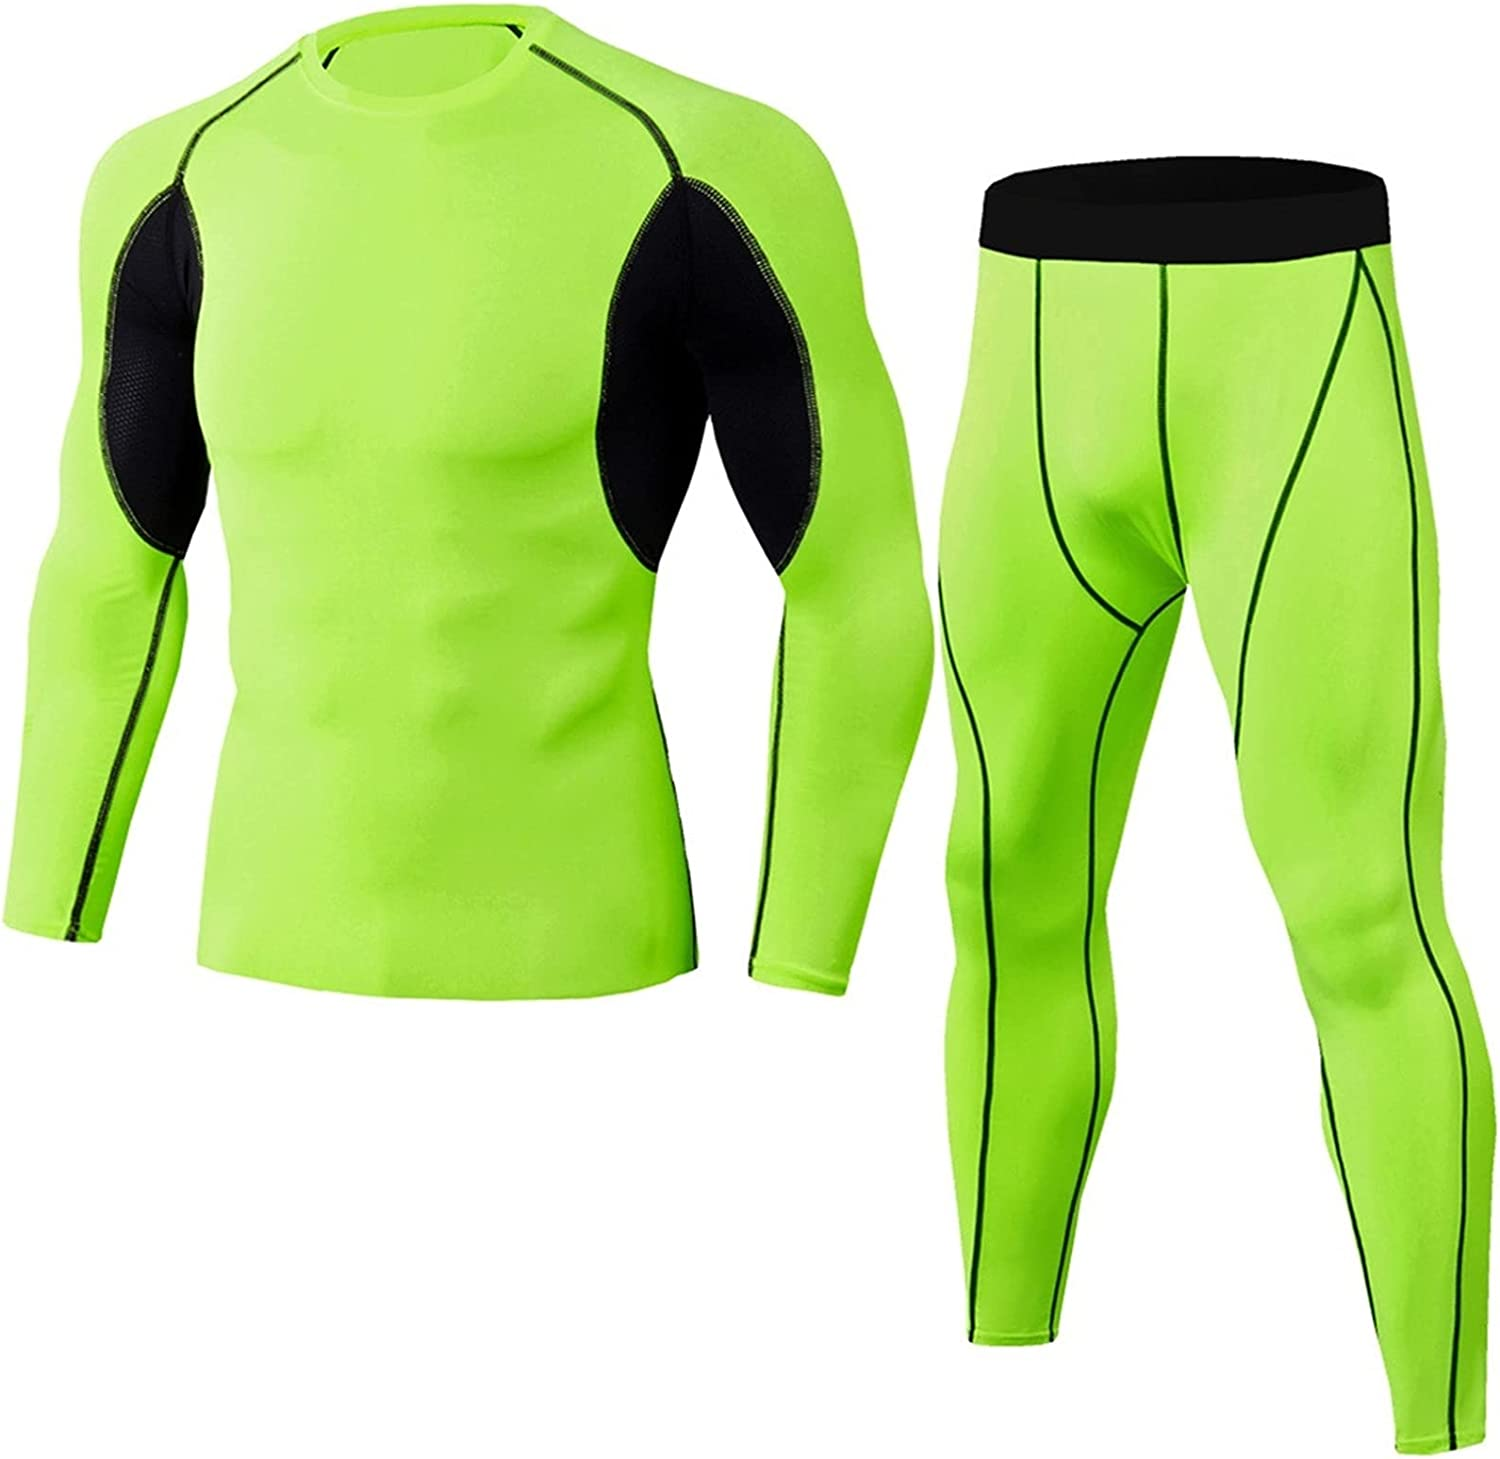 ZYKBB Thermal Underwear Comfortable and Breathable Basic Layer Thermal Underwear Sports Bottomed Tights Shirts Tights (Color : F, Size : XXL code)